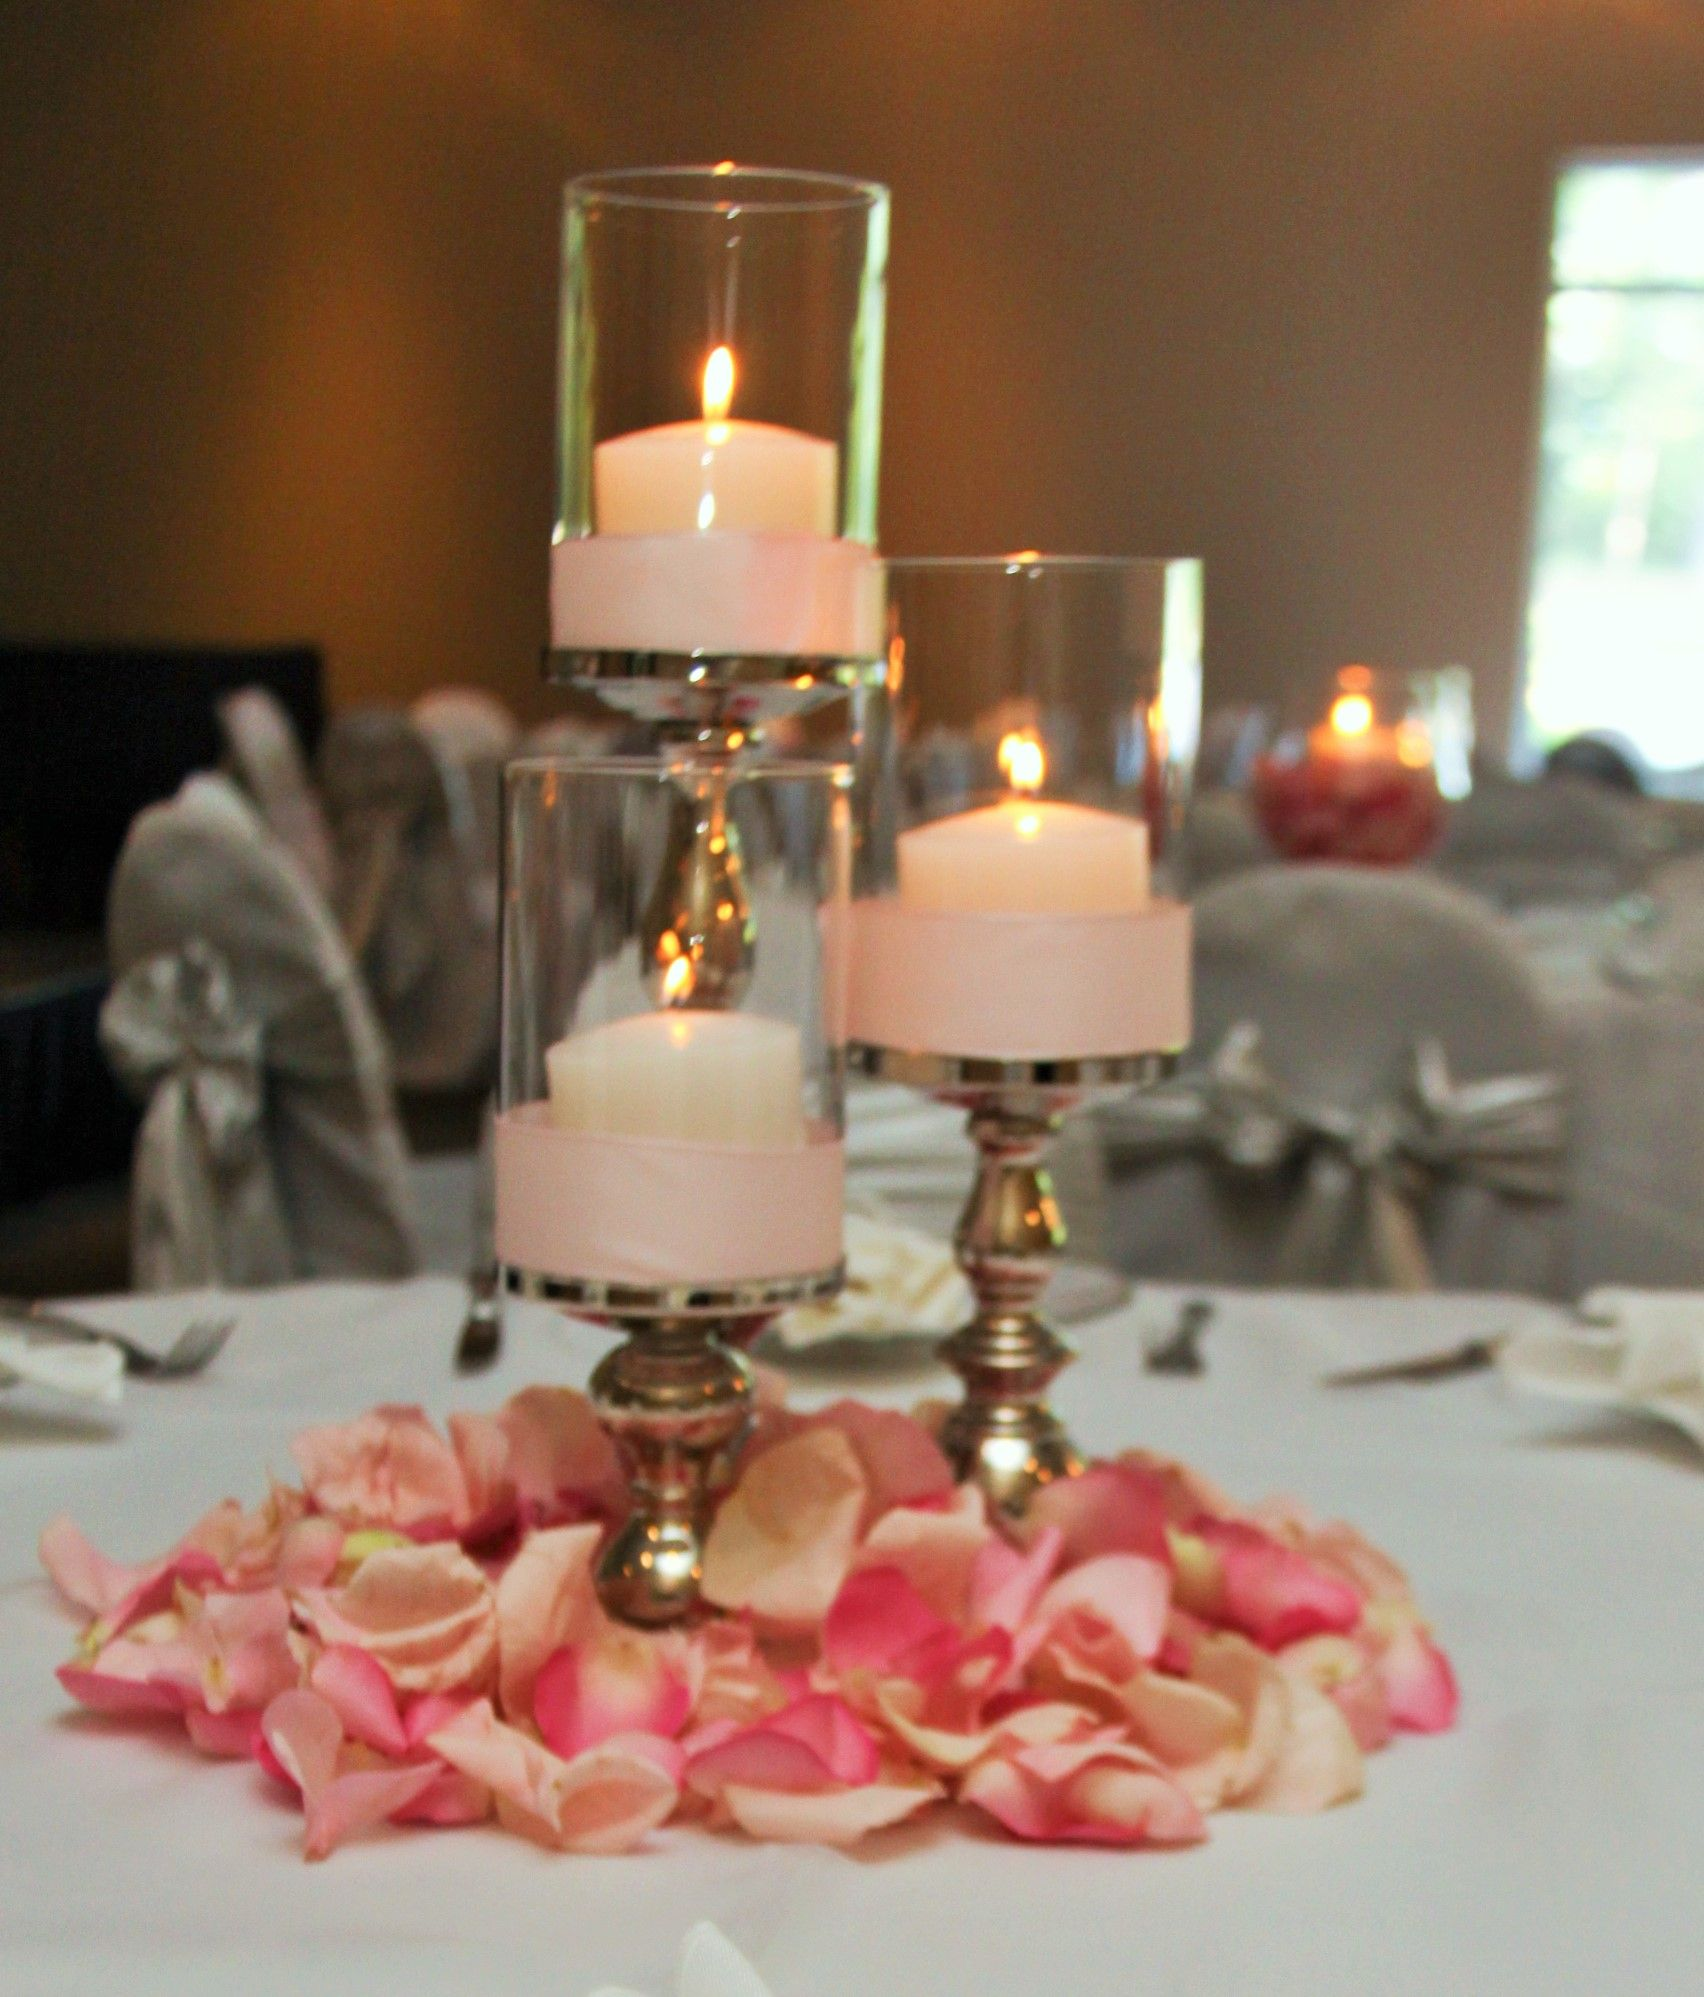 pinterest wedding table decorations candles%0A   Tier Silver Base Candle Holder with Globes surrounded by Rose Petals